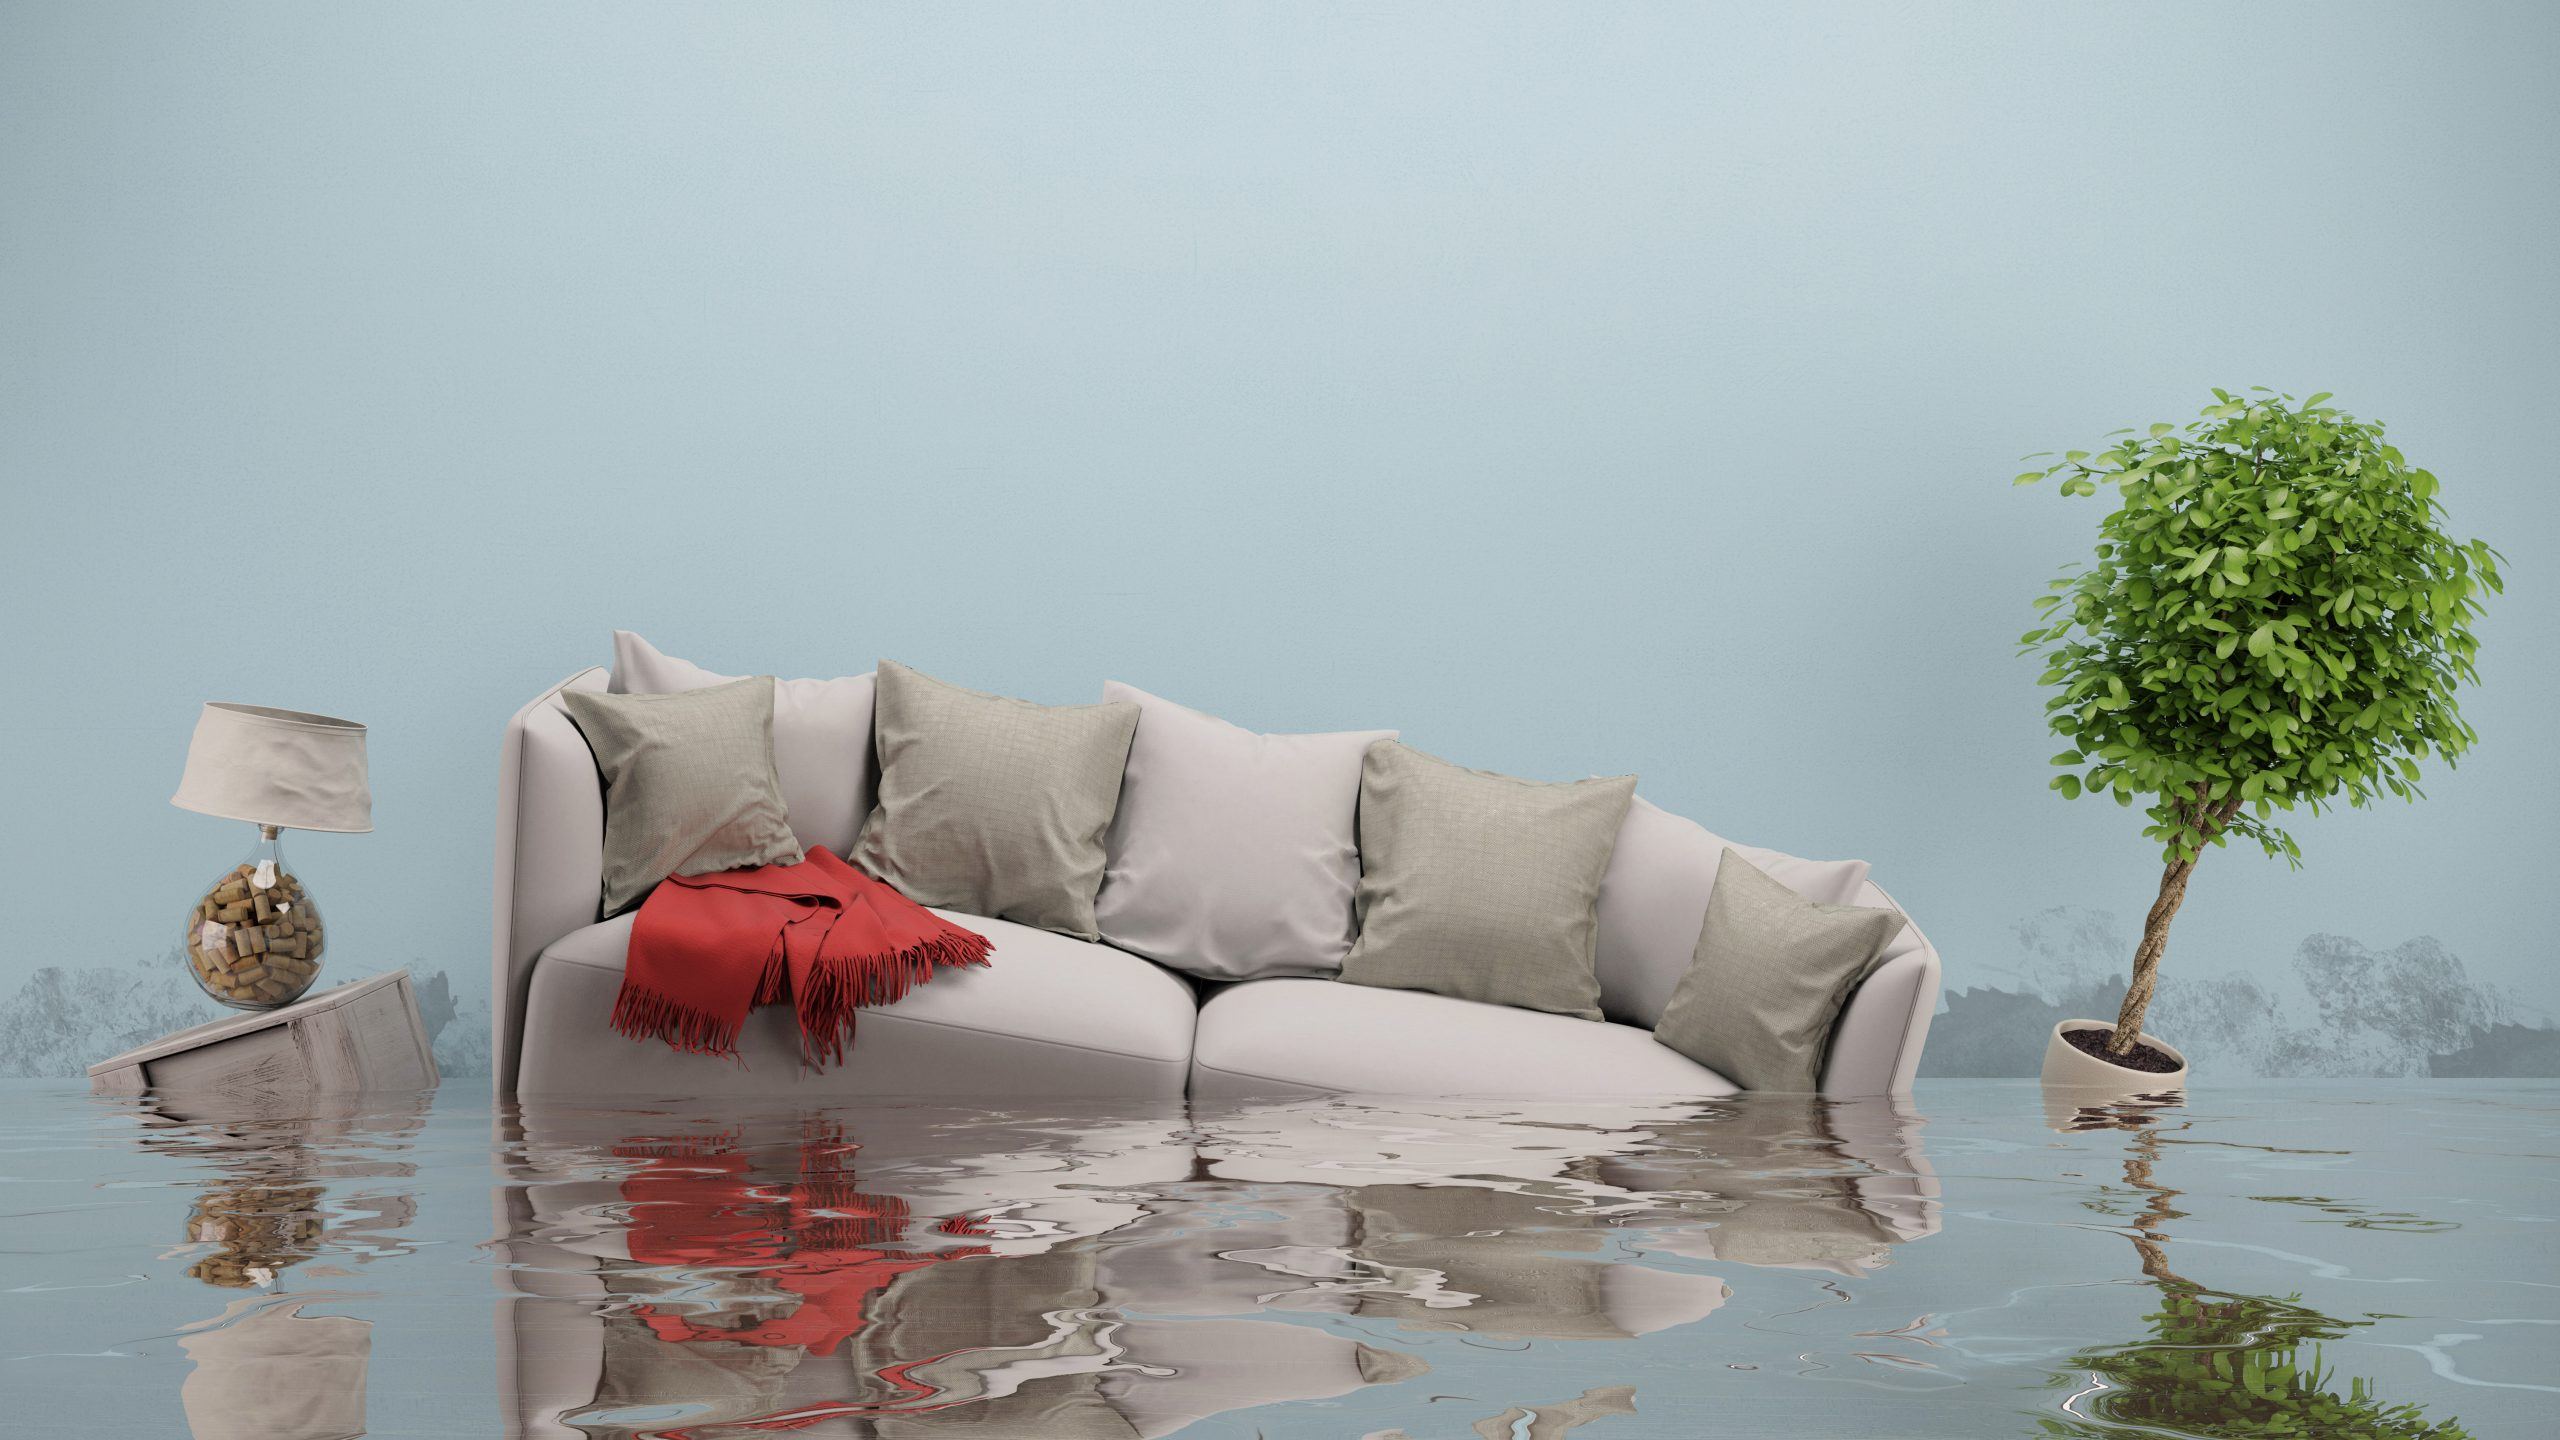 Prepare for floods, items in water